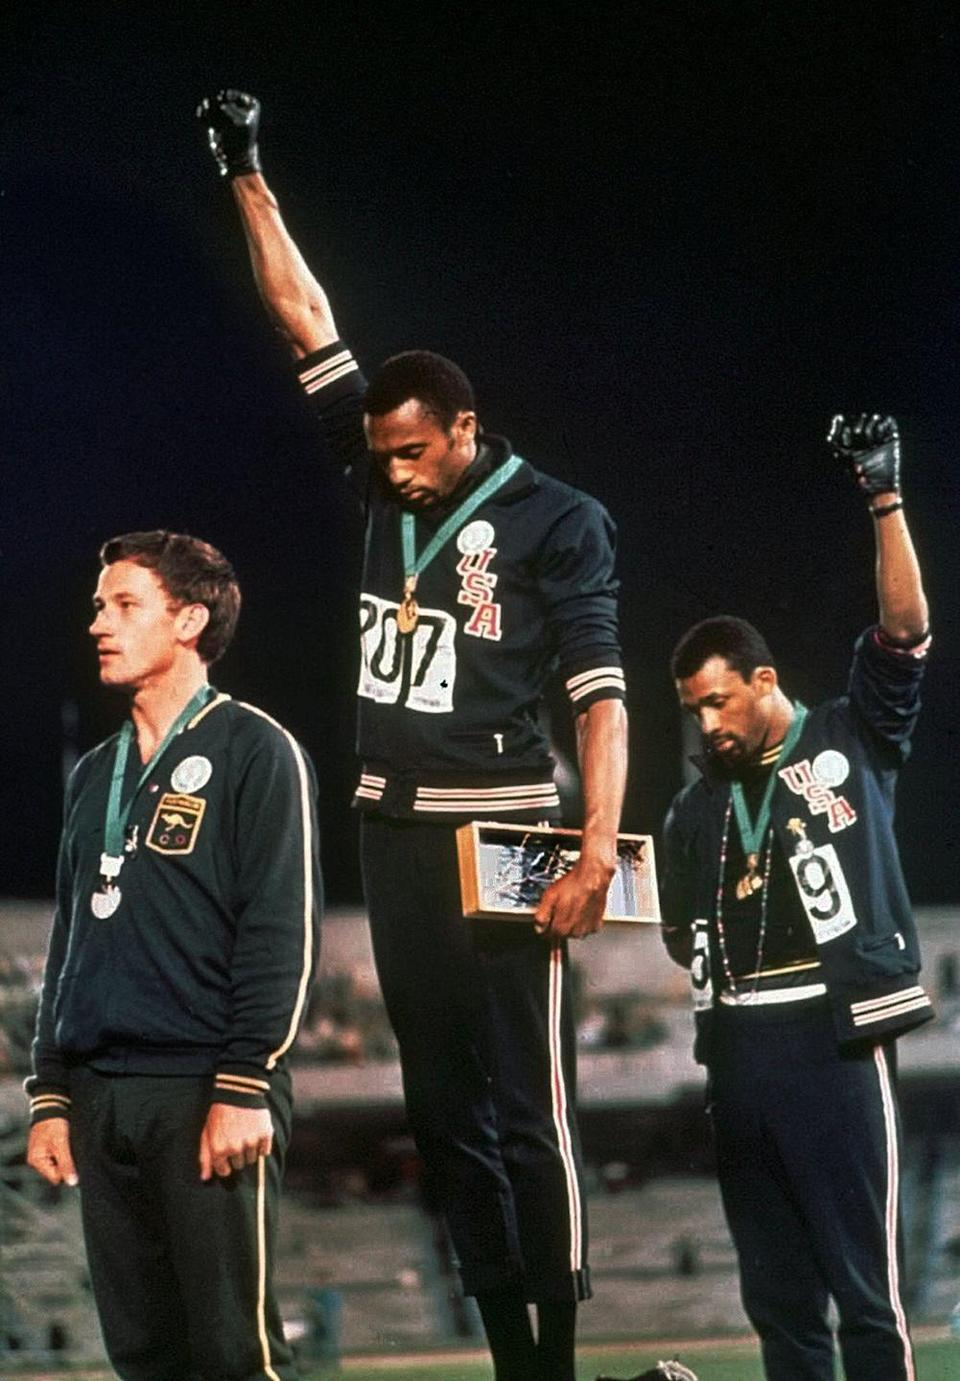 <p>1968. AP Caption: Extending gloved hands skyward in racial protest, U.S. athletes Tommie Smith, center, and John Carlos stare downward during the playing of the Star Spangled Banner after Smith received the gold and Carlos the bronze for the 200 meter run at the Summer Olympic Games in Mexico City on Oct. 16, 1968. Australian silver medalist Peter Norman is at left.</p>